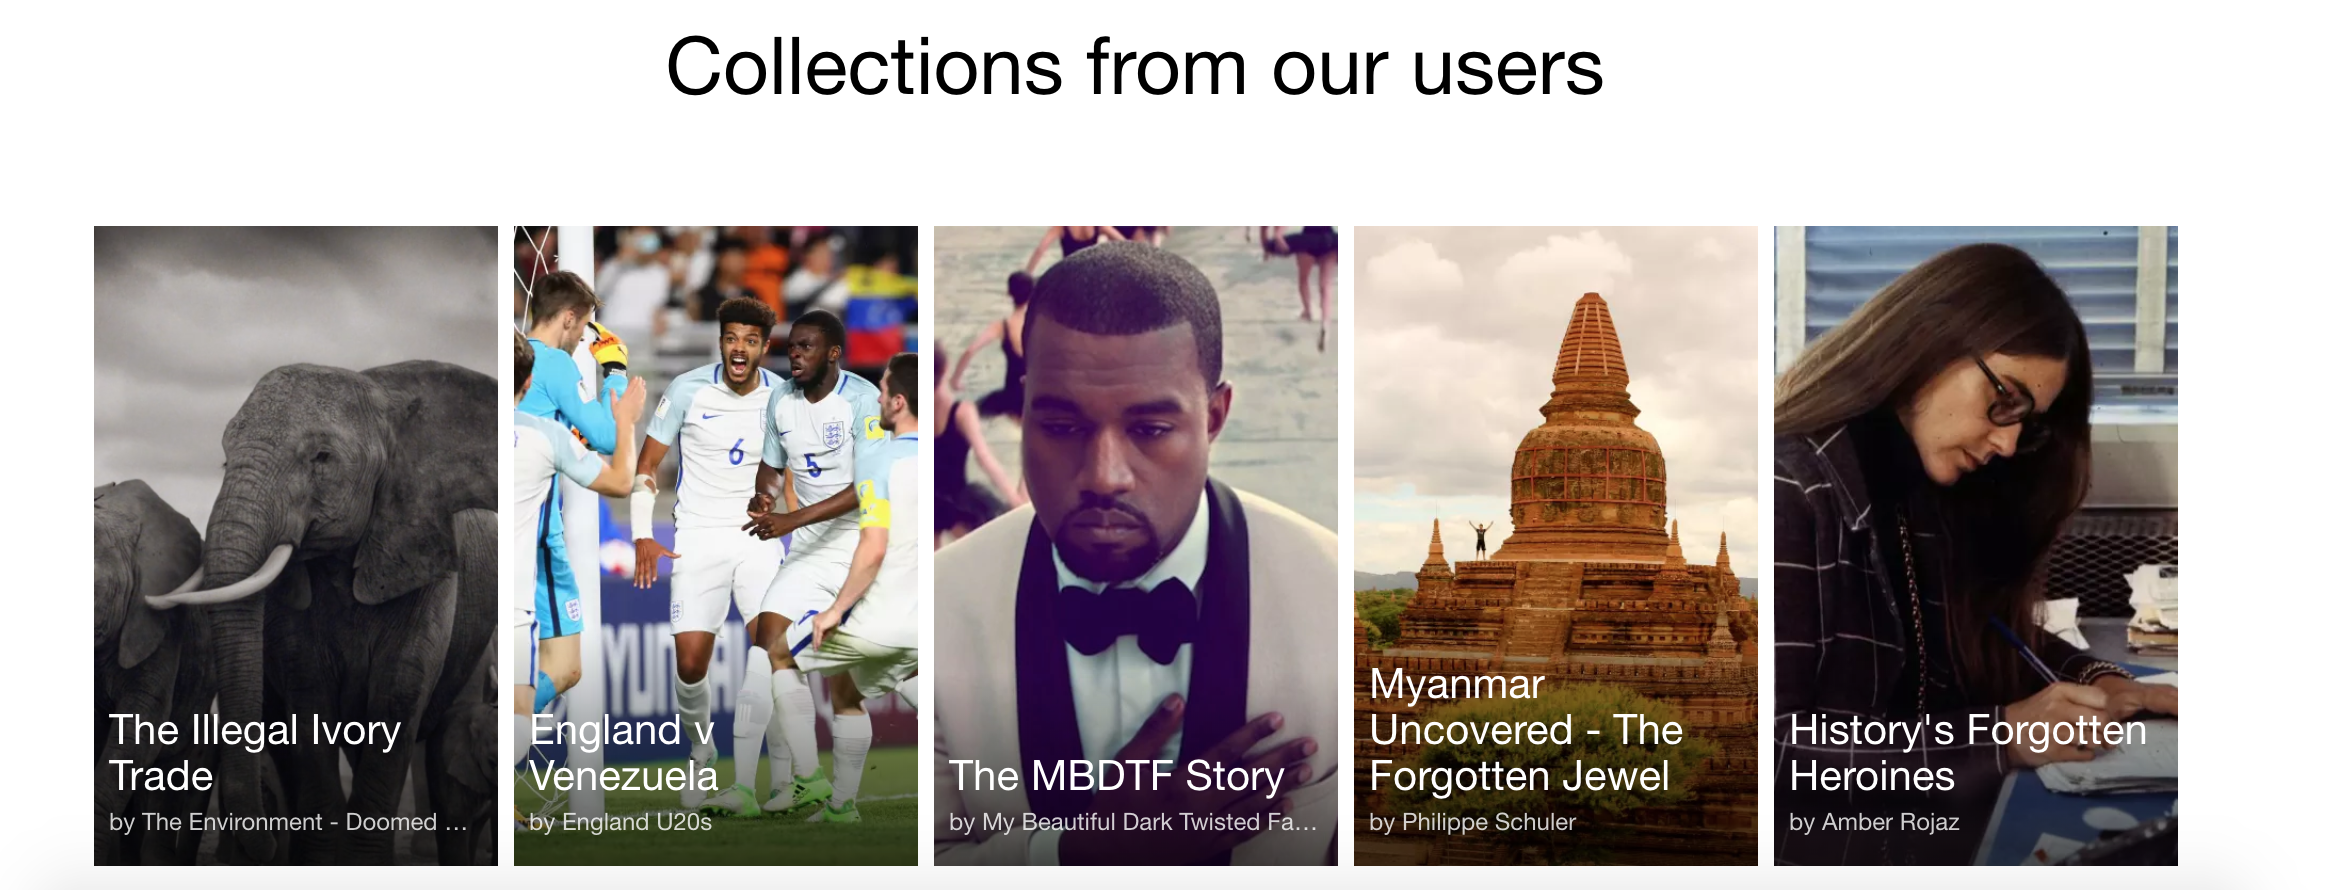 Collections from users: The Illegal Ivory Trade, England vs Venezuela, The MBDT Story, Myanmar Uncovered - The Forgotten Jewel, History's Forgotten Heroines